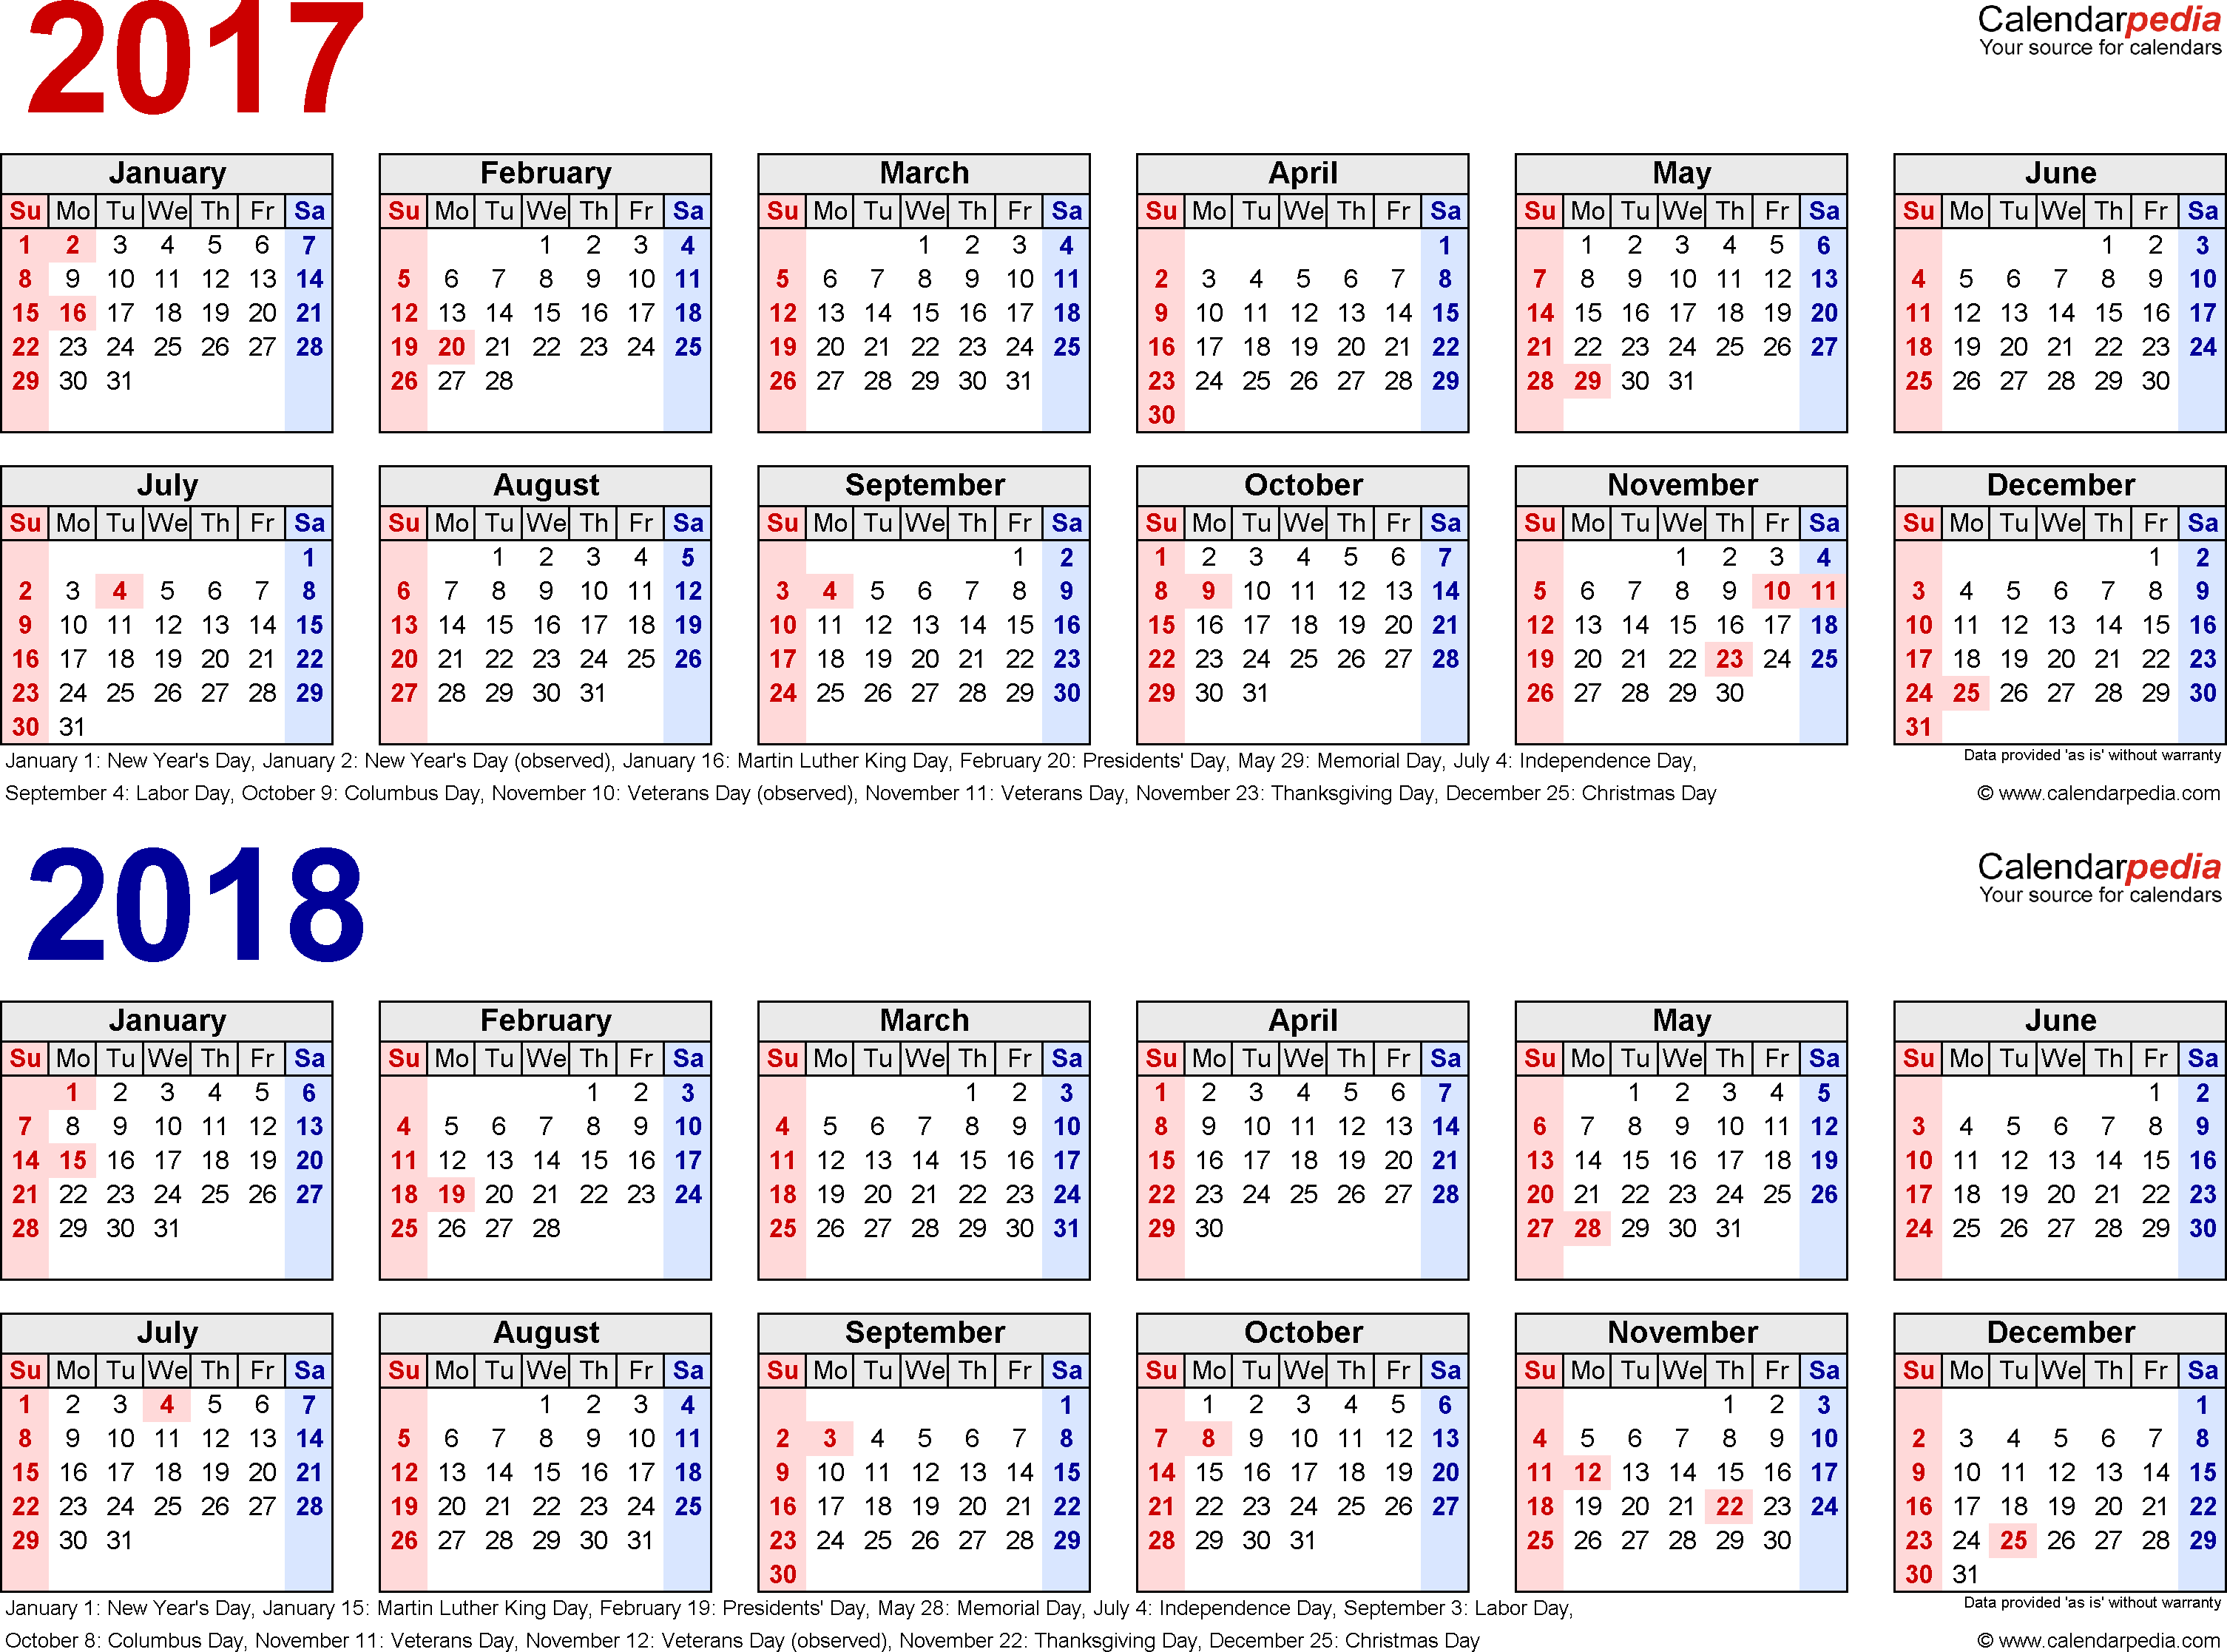 Template 1: Excel template for two year calendar 2017/2018 (landscape orientation, 1 page, in red and blue)